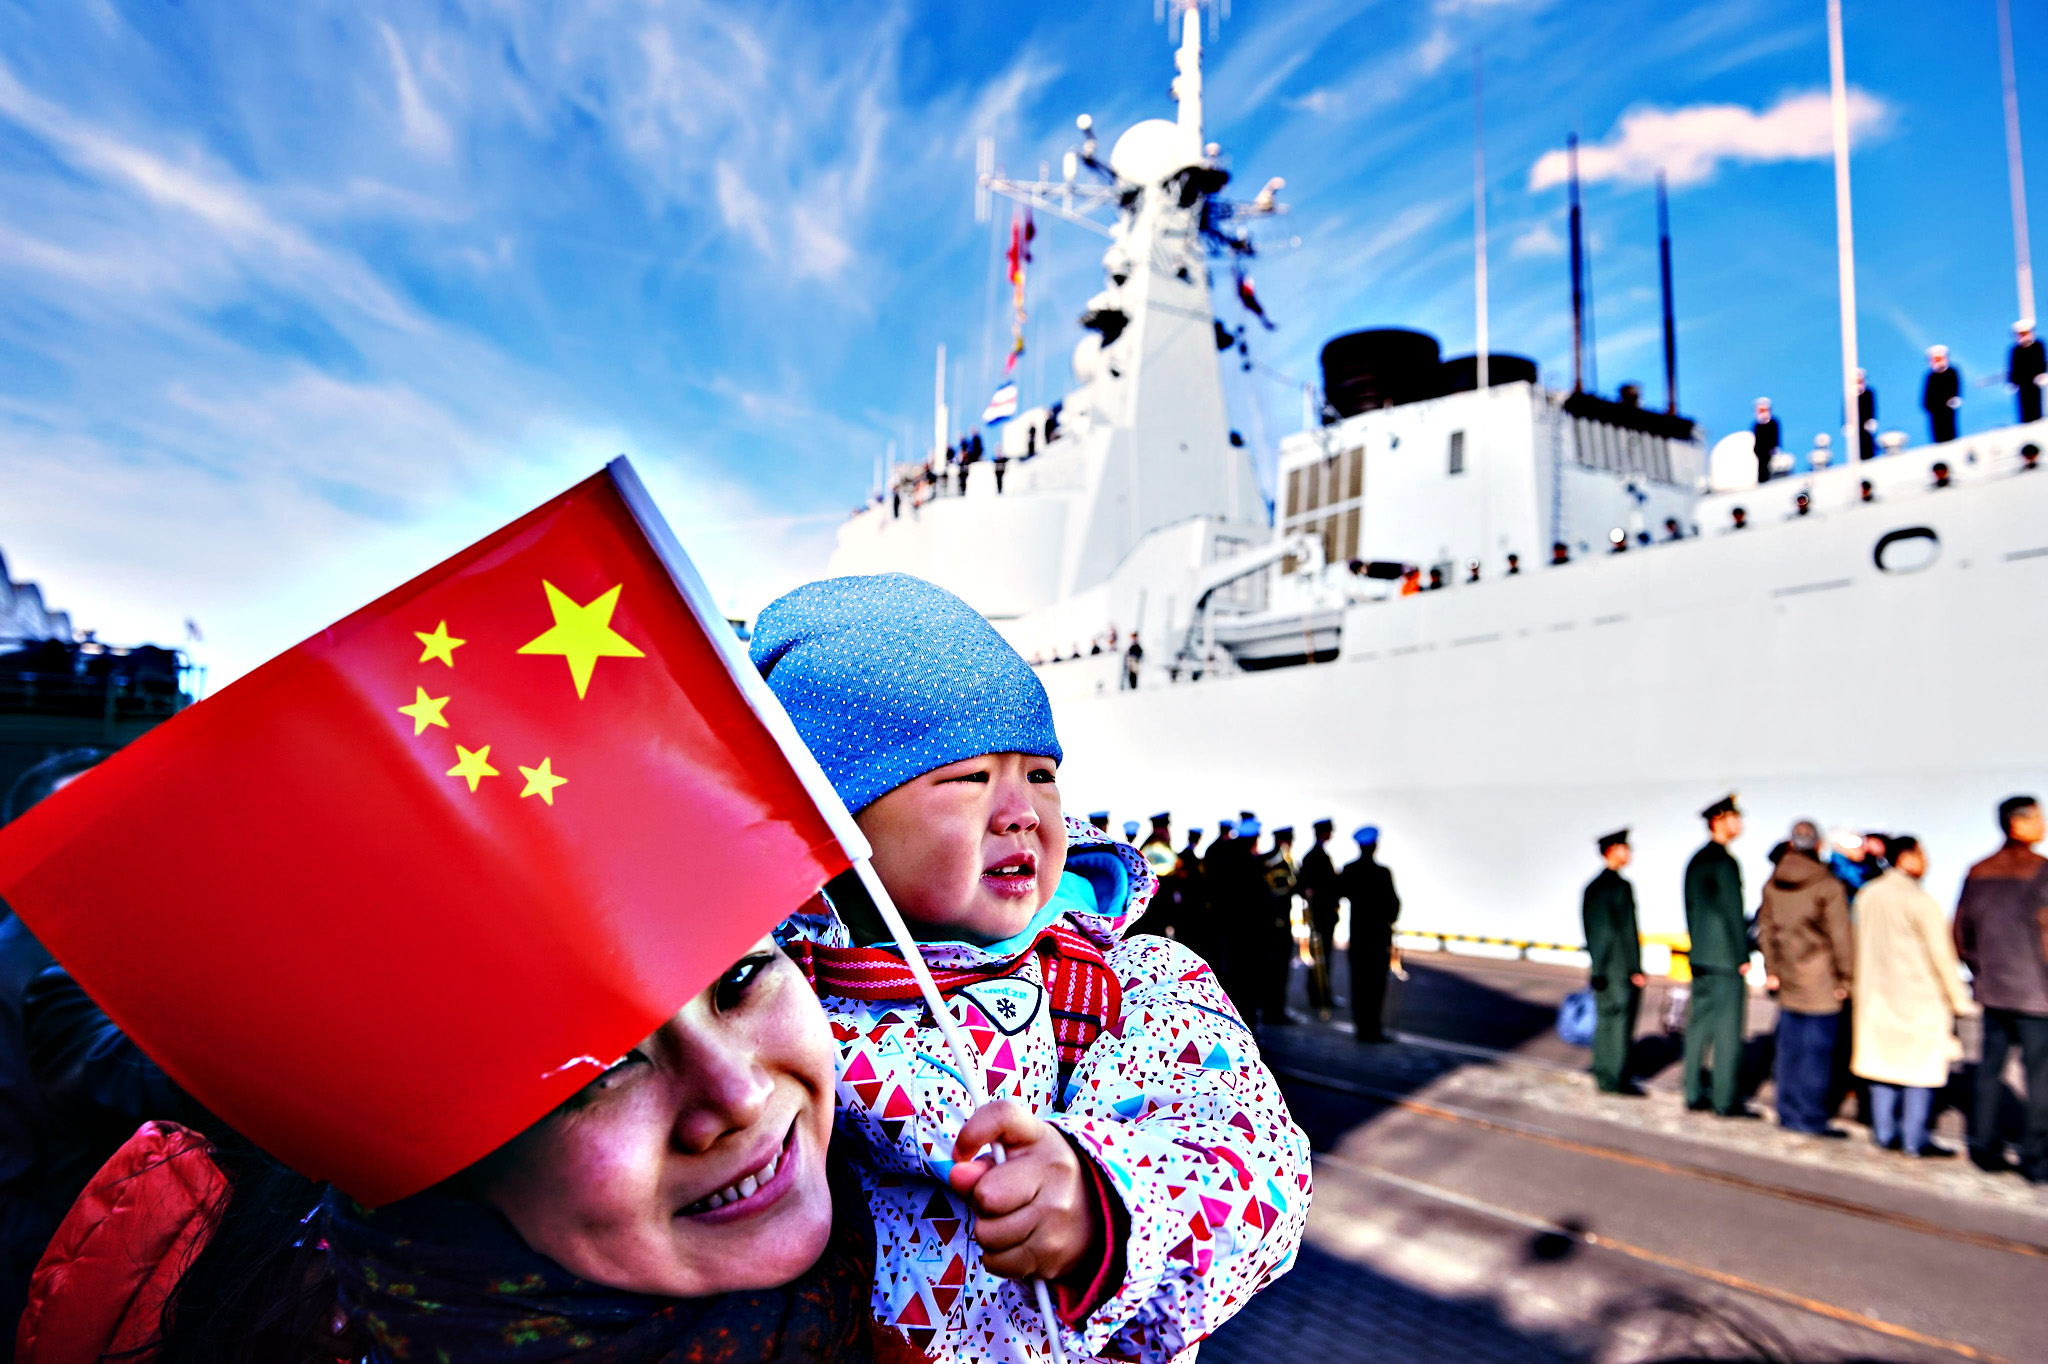 Chinese people living in Poland wait for Chinese Navy ships in the port of Gdynia in Gdynia, Poland, 07 October 2015. Three Chinese naval vessels, a destroyer 'Jinan', a multi-role frigate 'Yiyang' and replenishment ship 'Qiandaohu', came to Gdynia for the Chinese Navy's first-ever visit to Poland. The ships are part of a task force which recently completed an anti-piracy mission in the Gulf of Aden. The ships are currently on a five-month tour of seaports worldwide and have already visited Sudan, Egypt, Denmark, Finland and Sweden. The visit to Poland is aimed at developing friendly relations and exchange between China and Poland